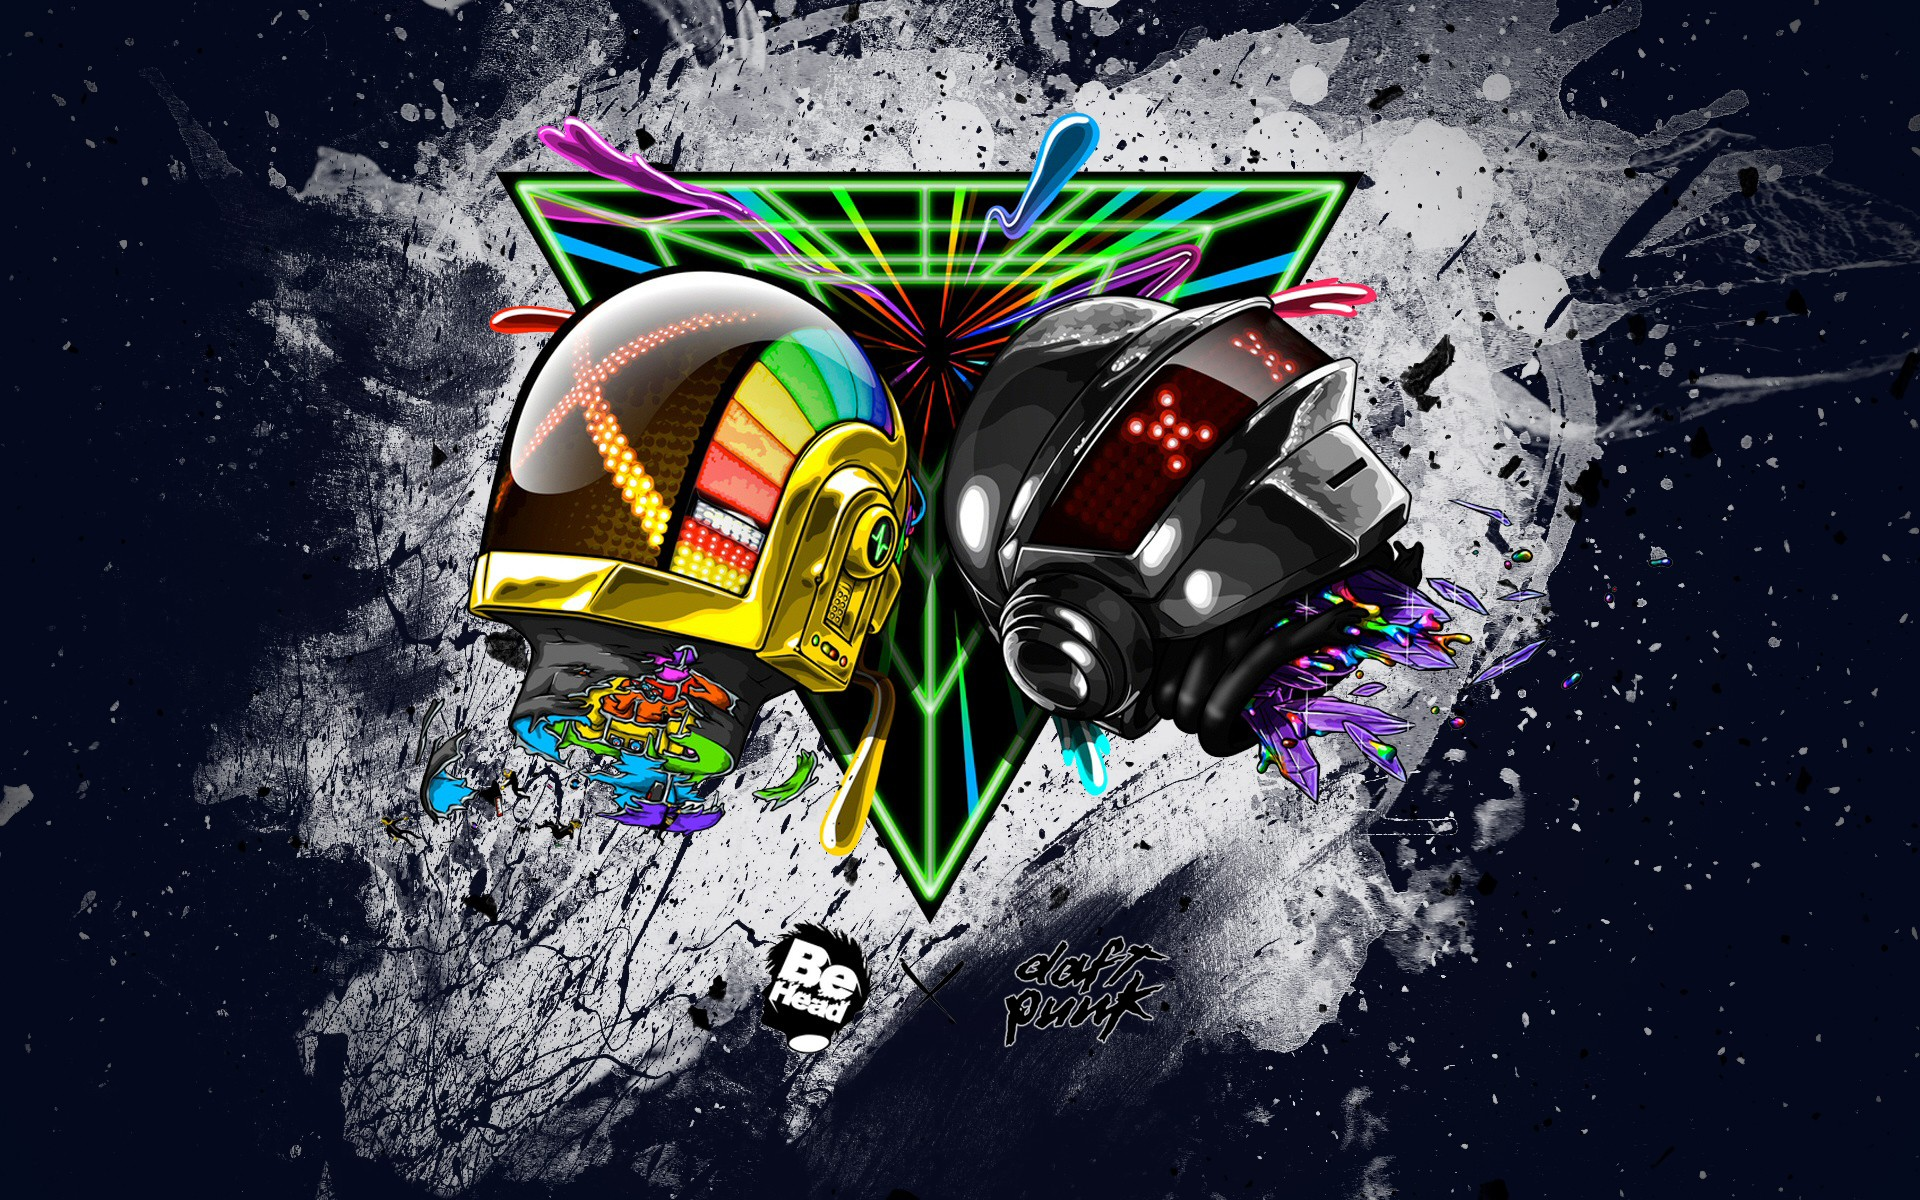 Daft Punk Abstract Wallpaper